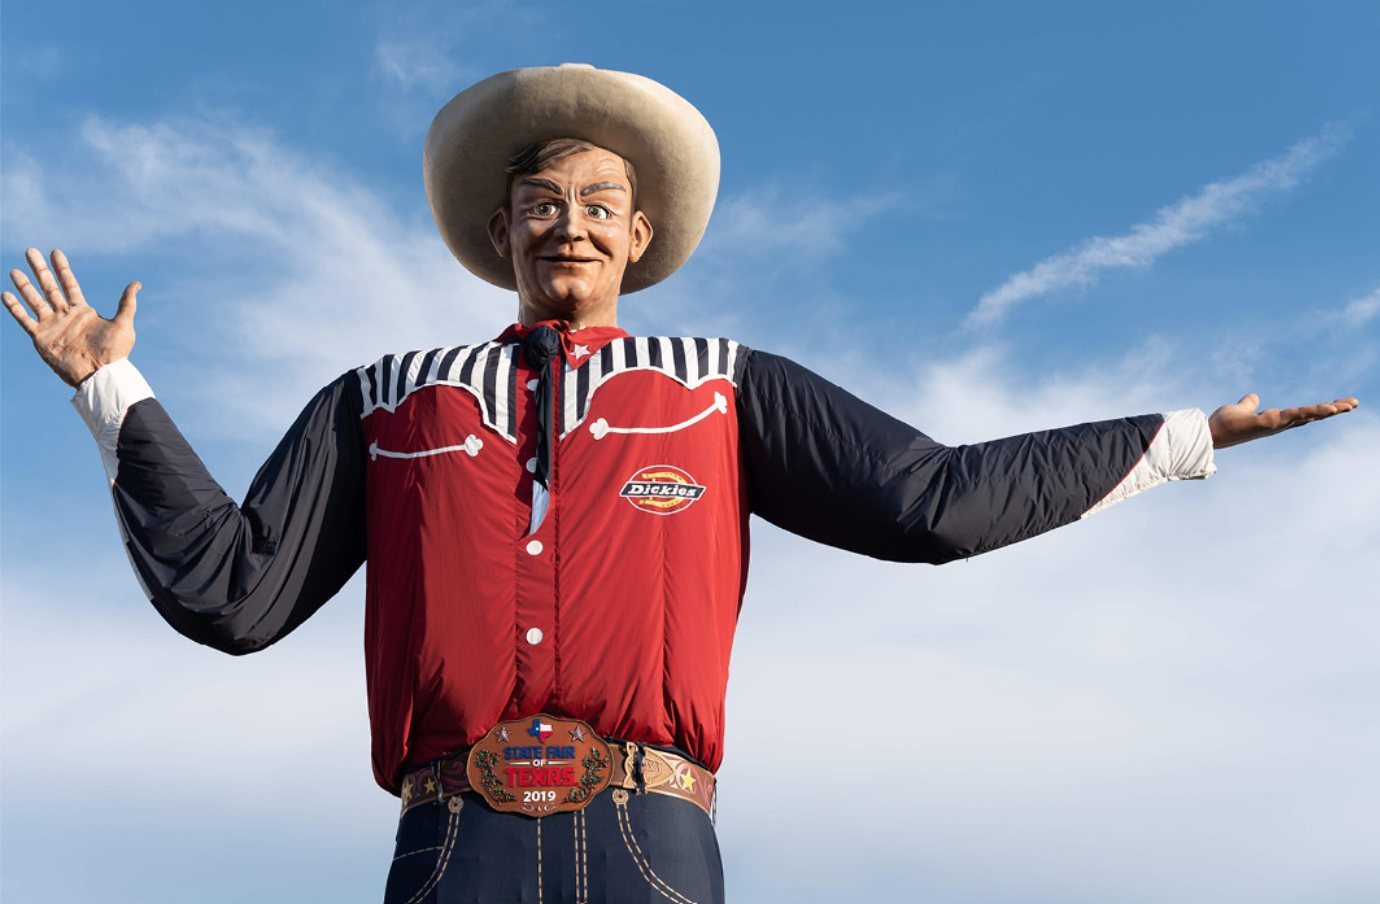 State Fair of Texas is Searching for Next Voice of Big Tex